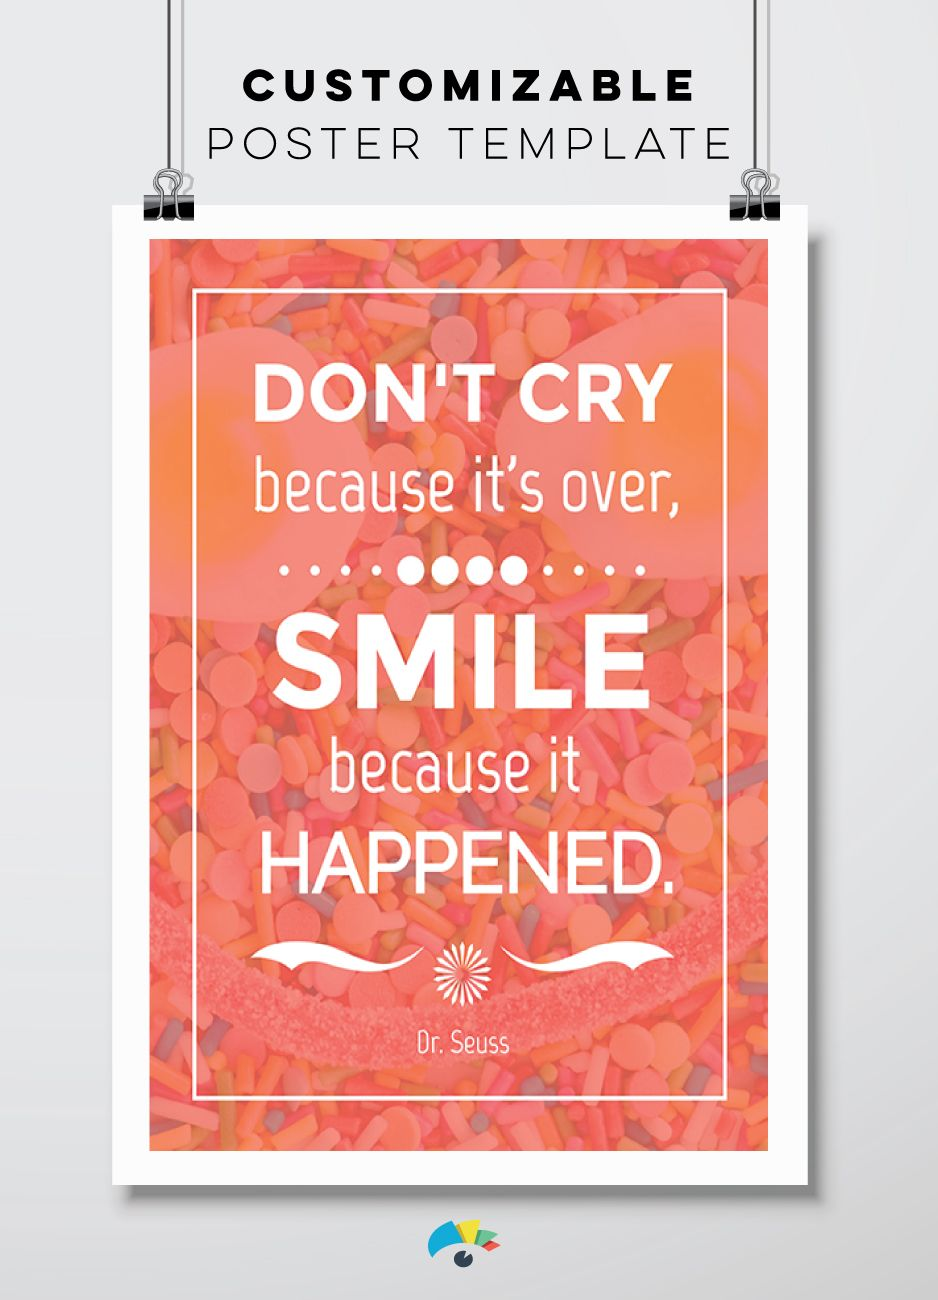 Make Your Own Quote Poster With This Easy To Use Template Change The Content In Seconds And Insert Your Own Favorit Quote Posters Seuss Quotes Dr Seuss Quotes